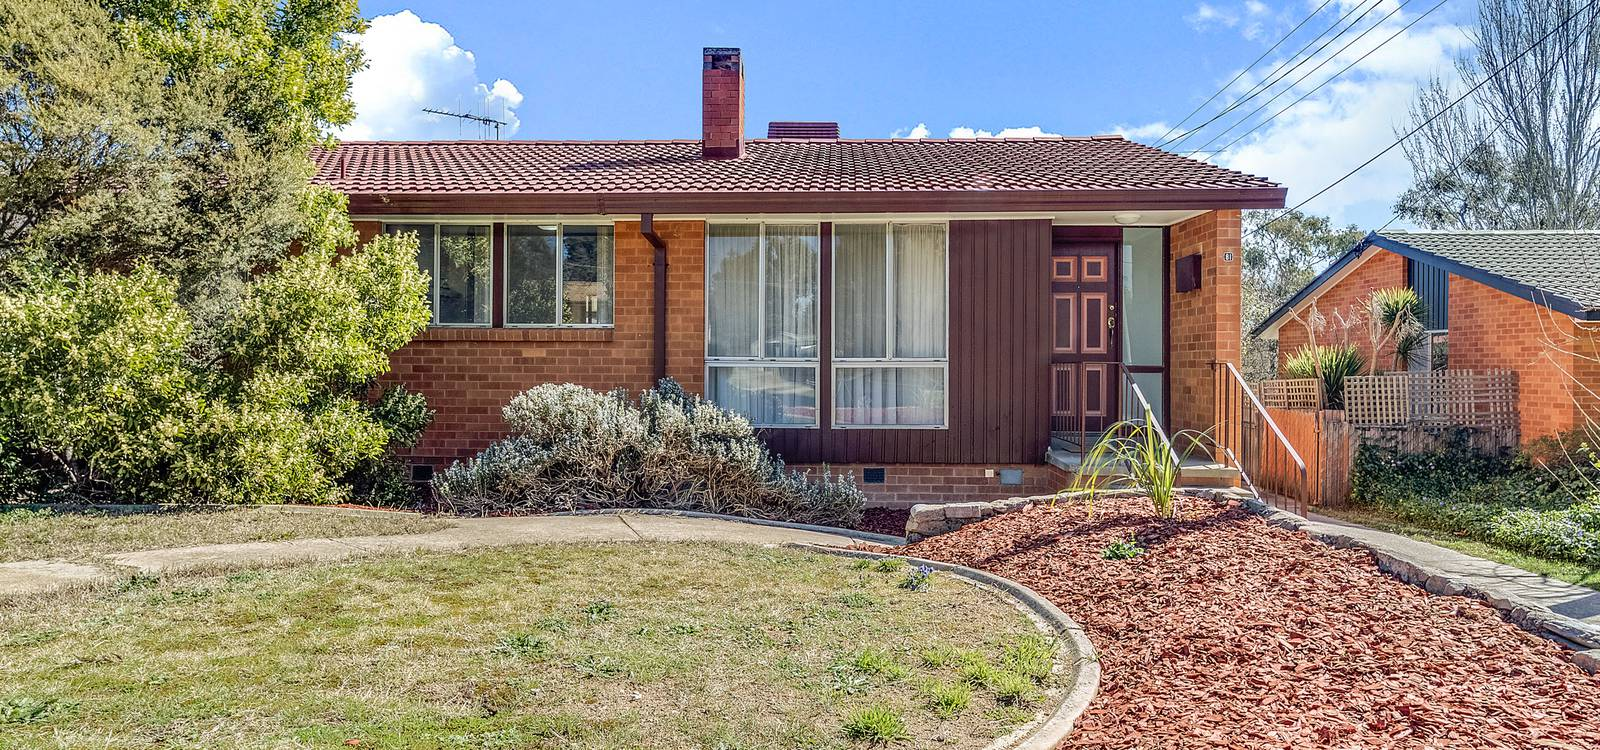 81 Pennefather Street HIGGINS, ACT 2615 - photo 1